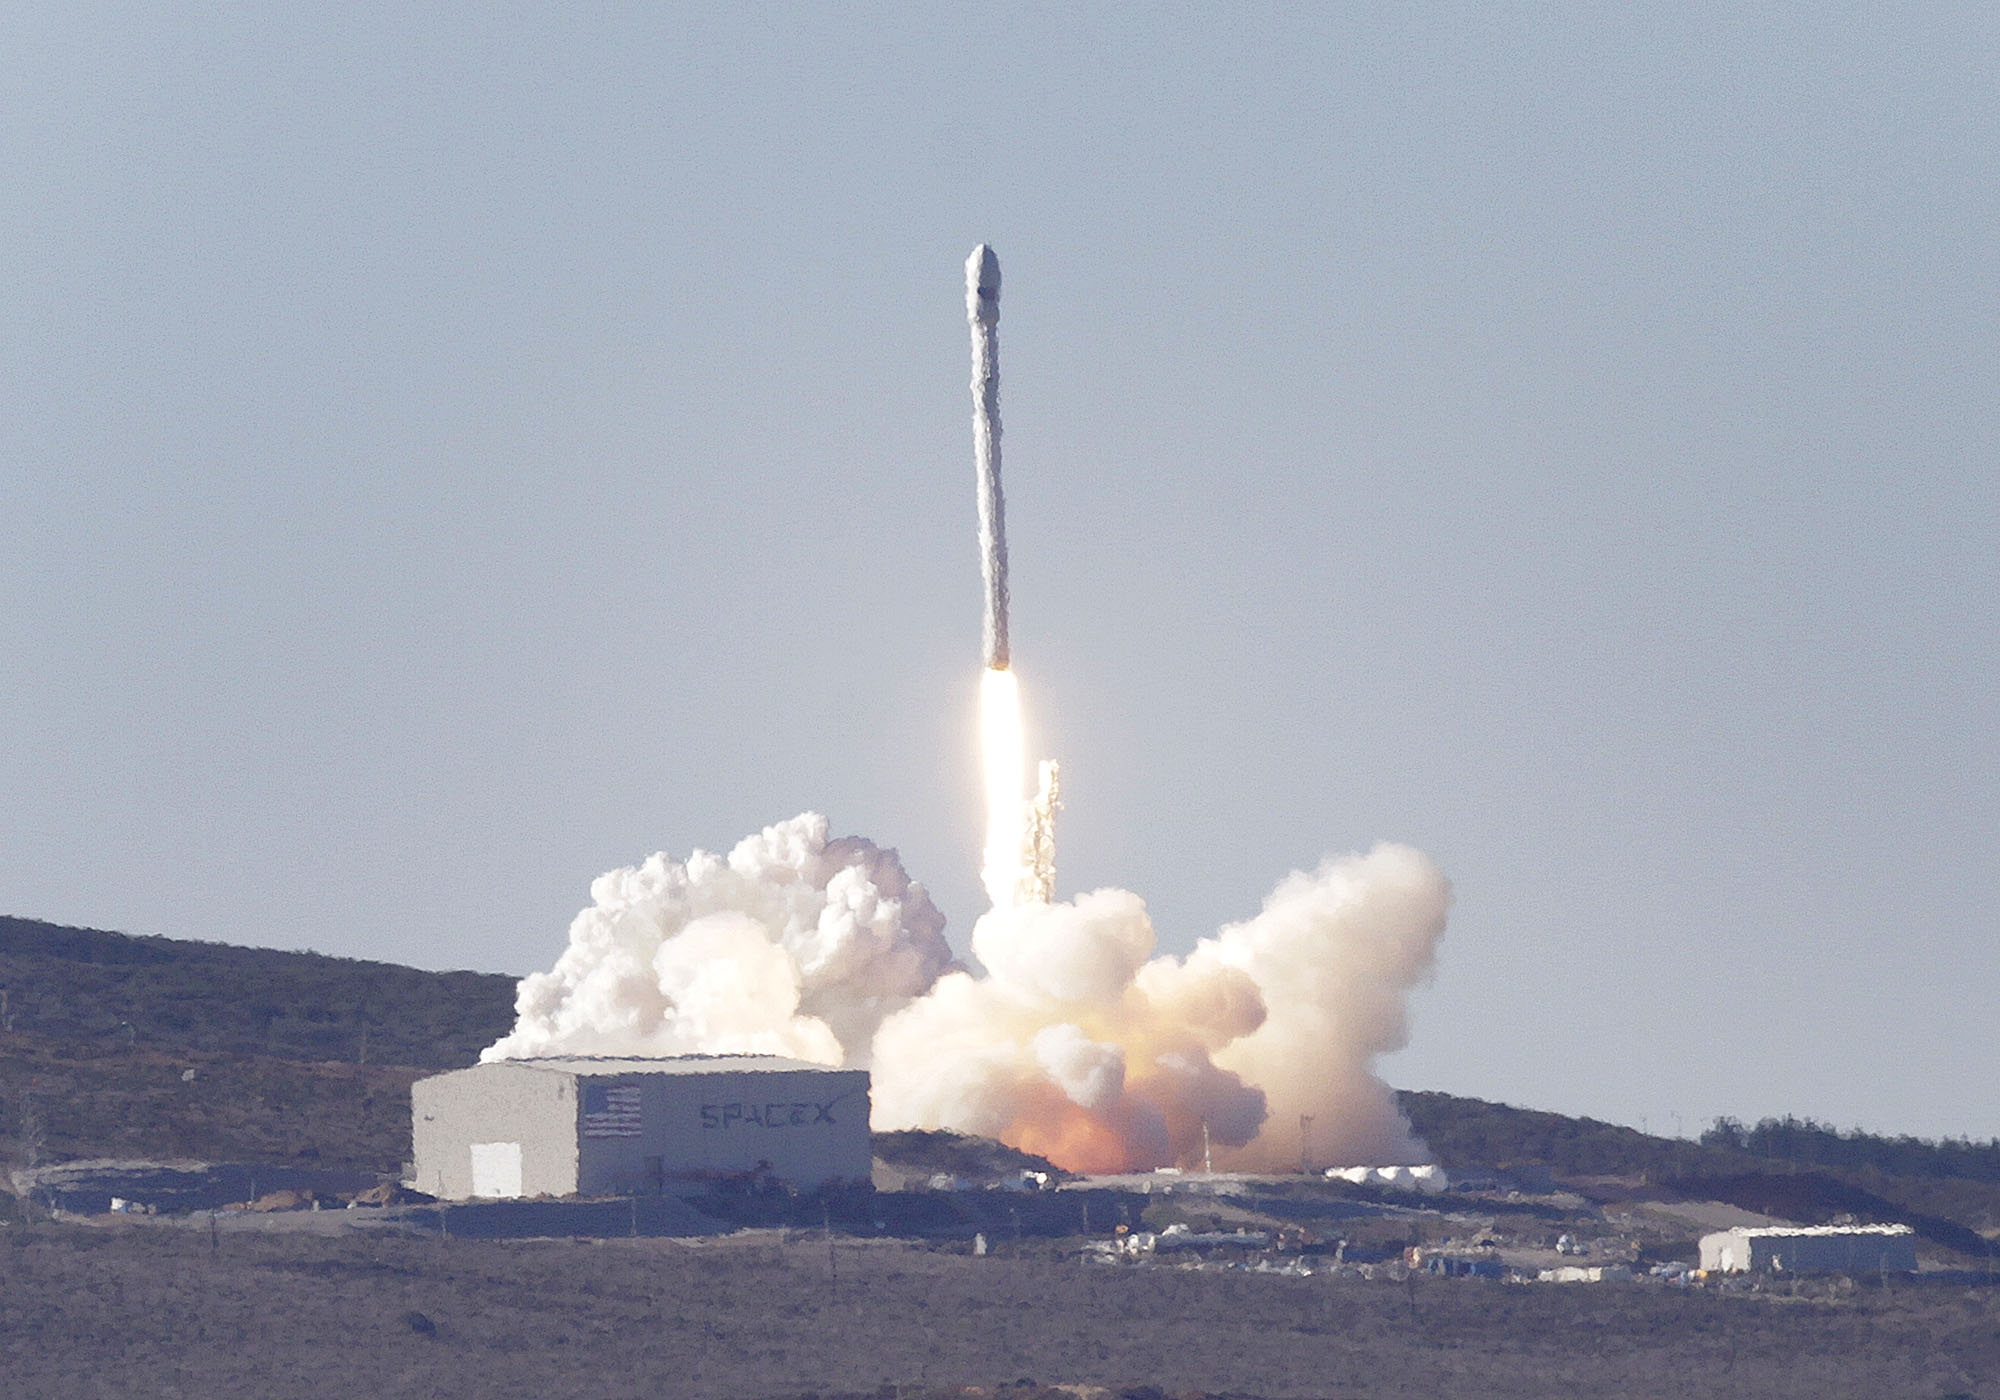 """A SpaceX Falcon 9 rocket blasts off from Vandenberg Air Force Base in California on Sunday. The rocket carried into orbit a small satellite that will study """"space weather."""""""